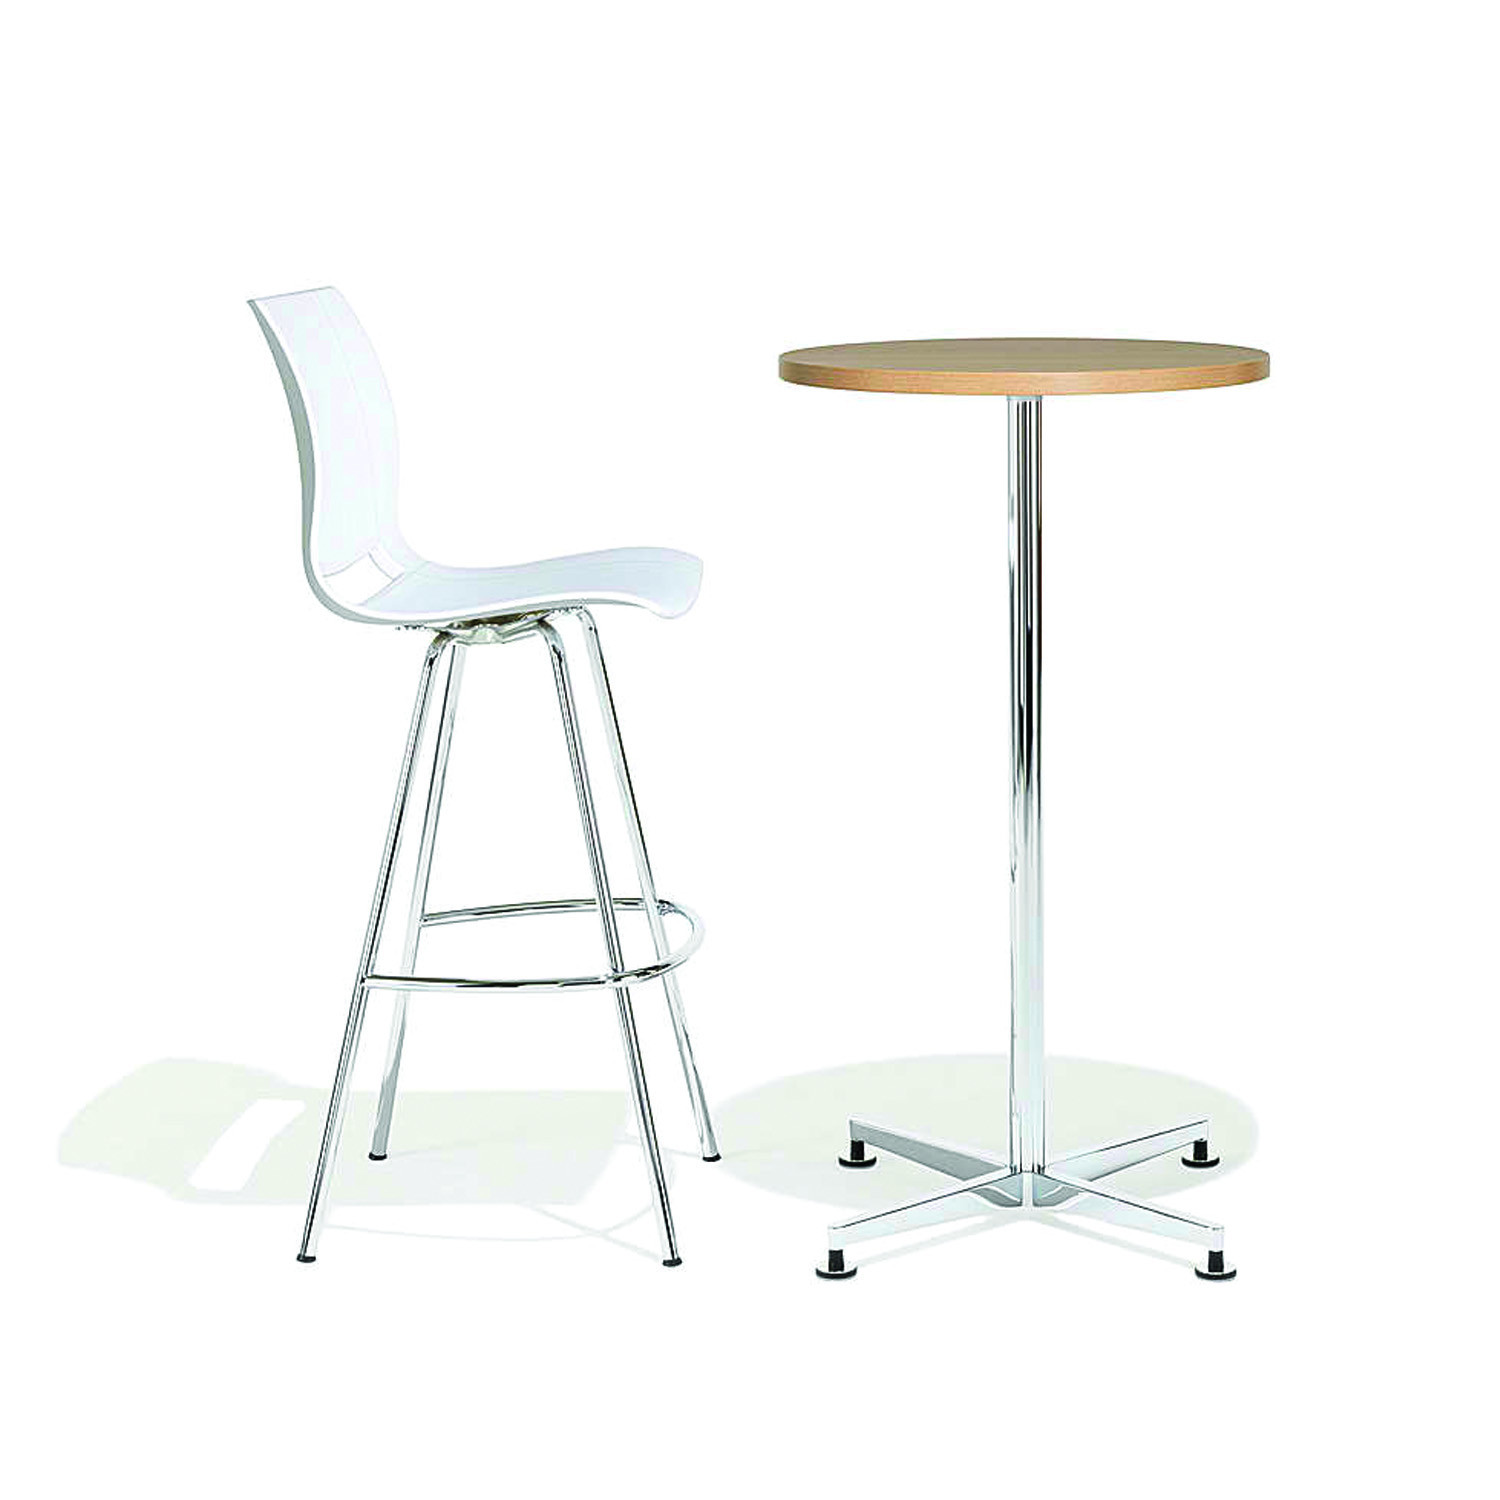 6000 San_Siro Bar Height Table with glides